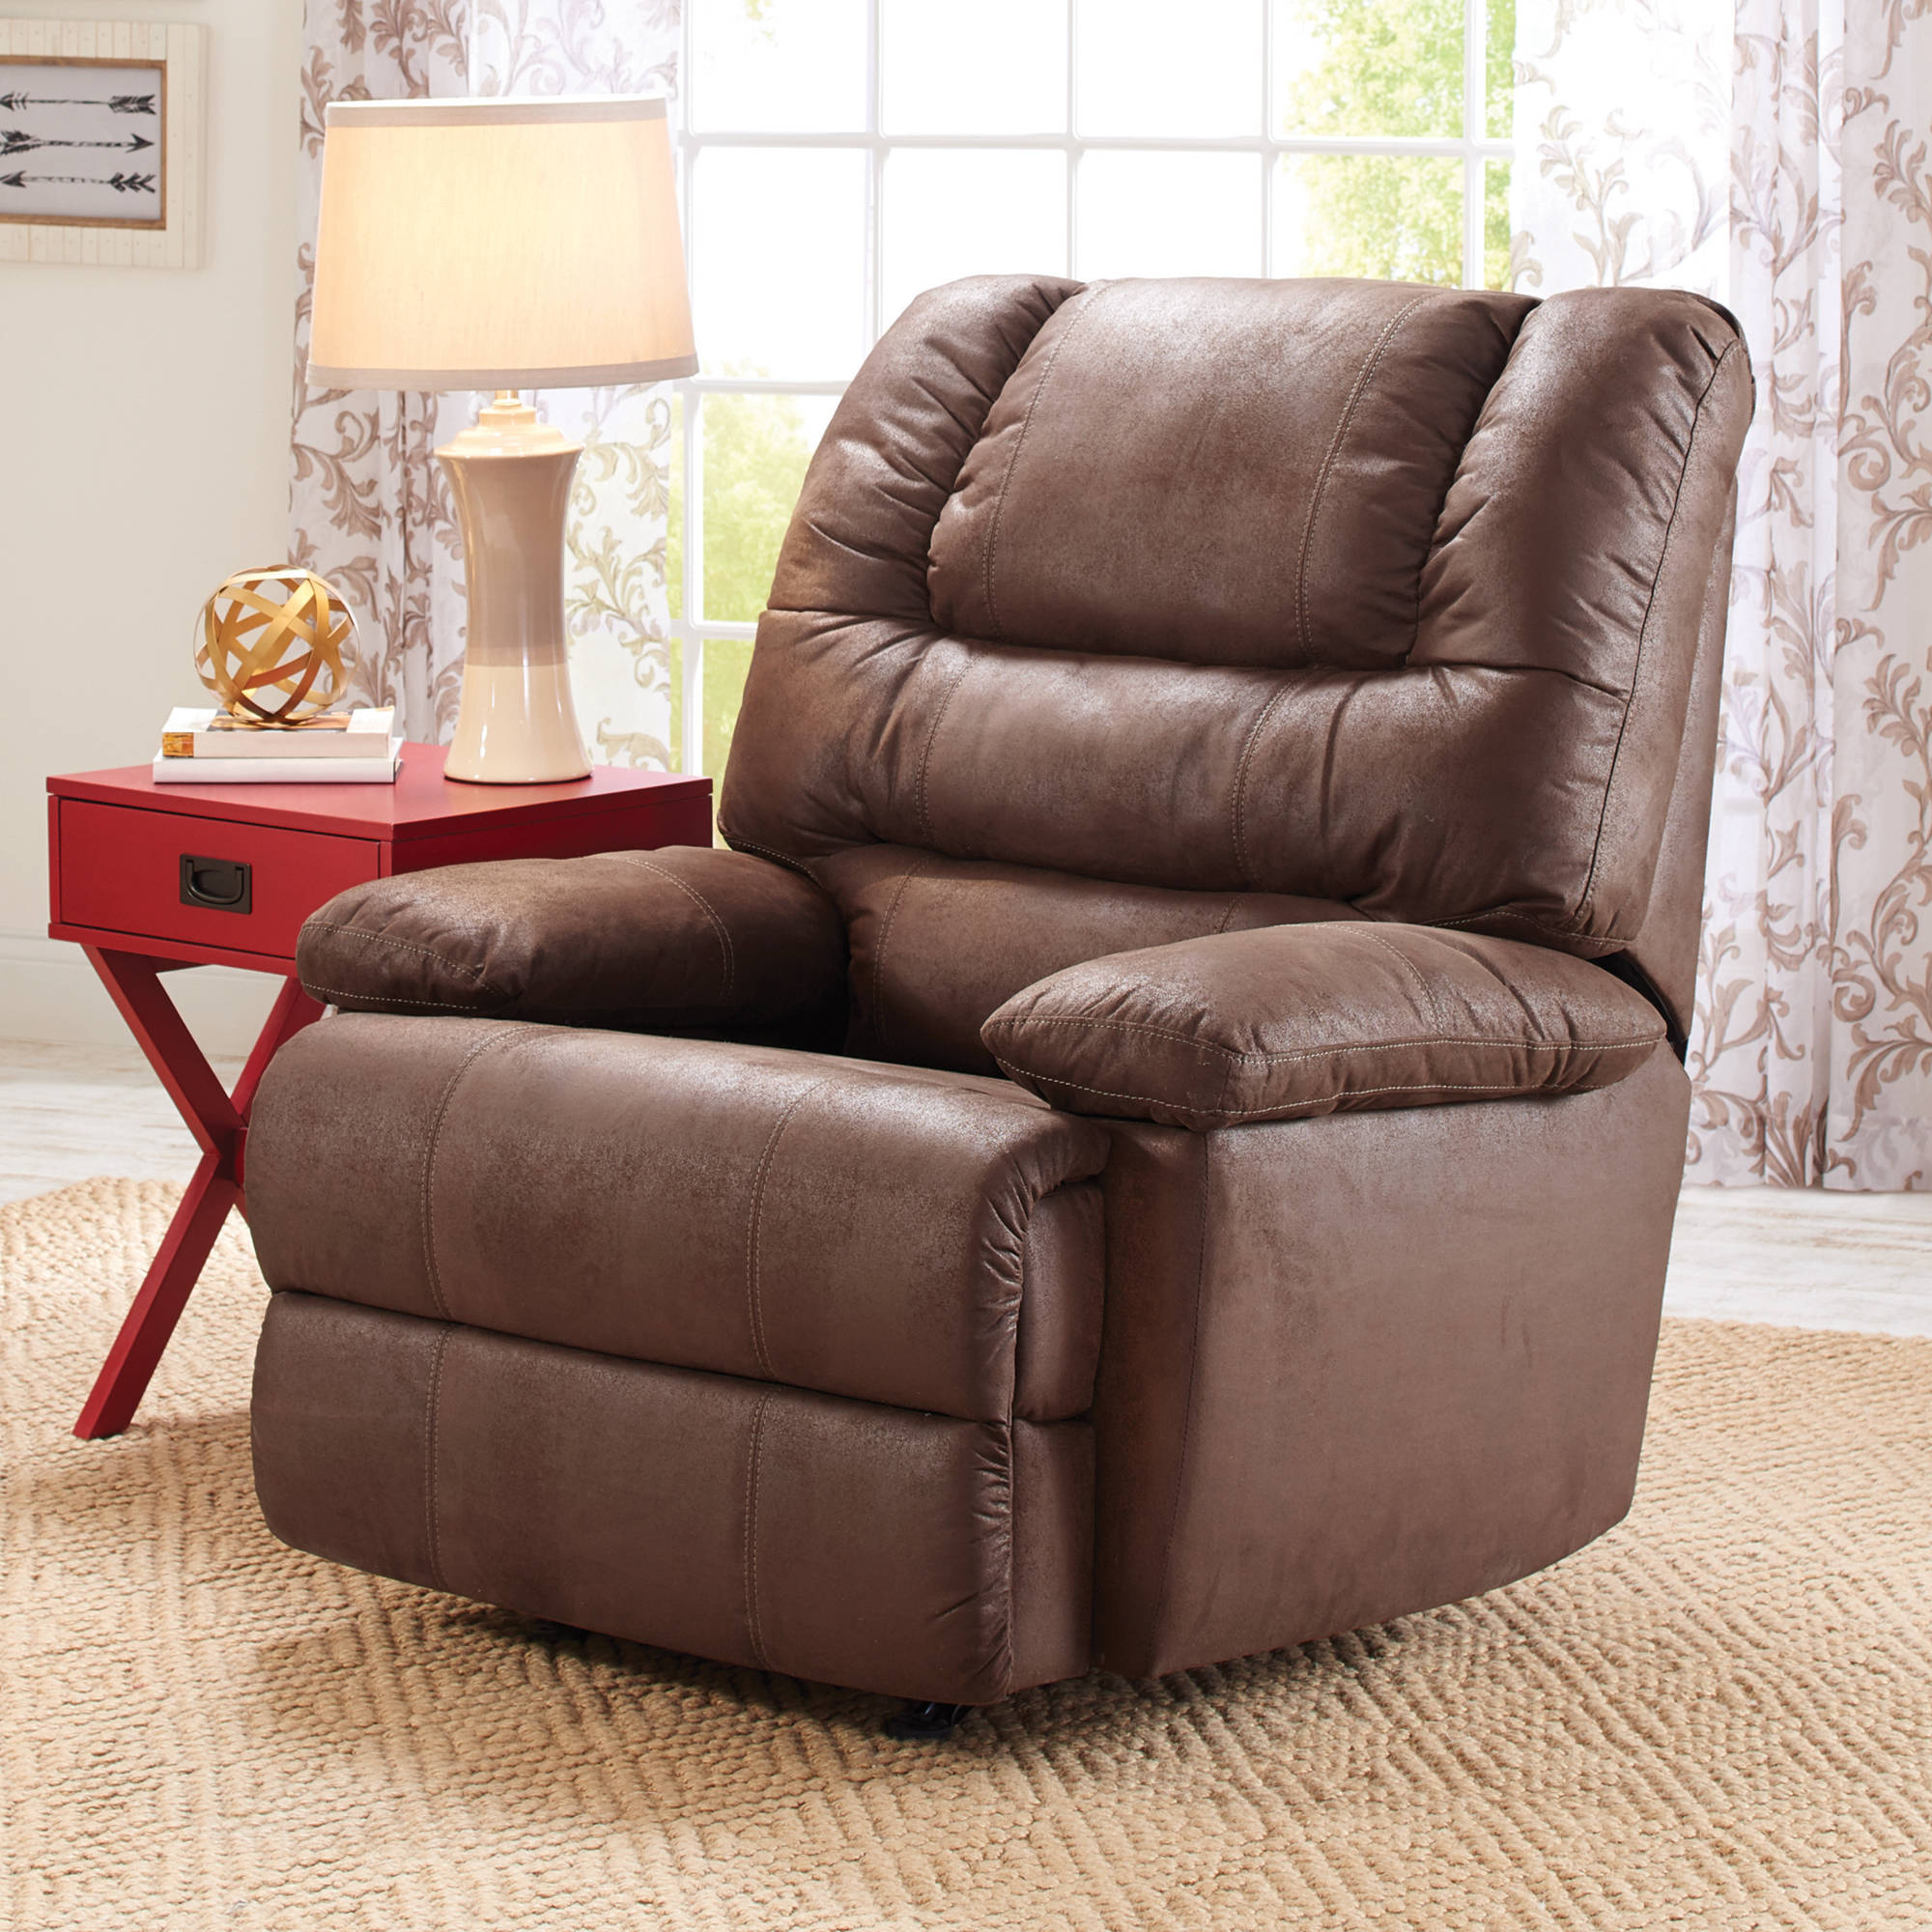 Simmons Manhattan Faux Leather Recliner | Simmons Recliner | Cuddle Up  Recliner